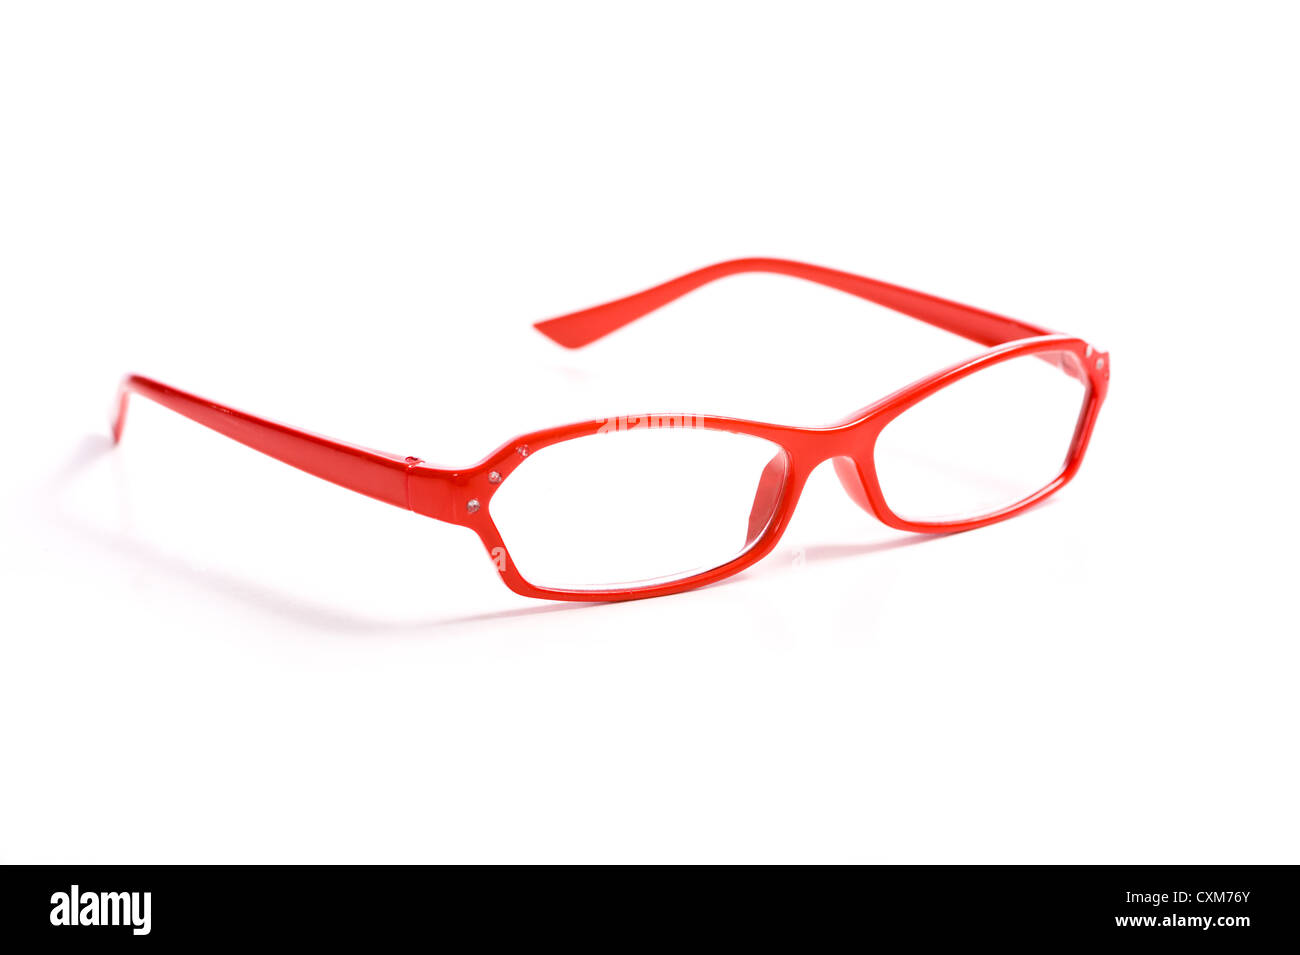 A pair of red reading glasses on white background with copy space - Stock Image